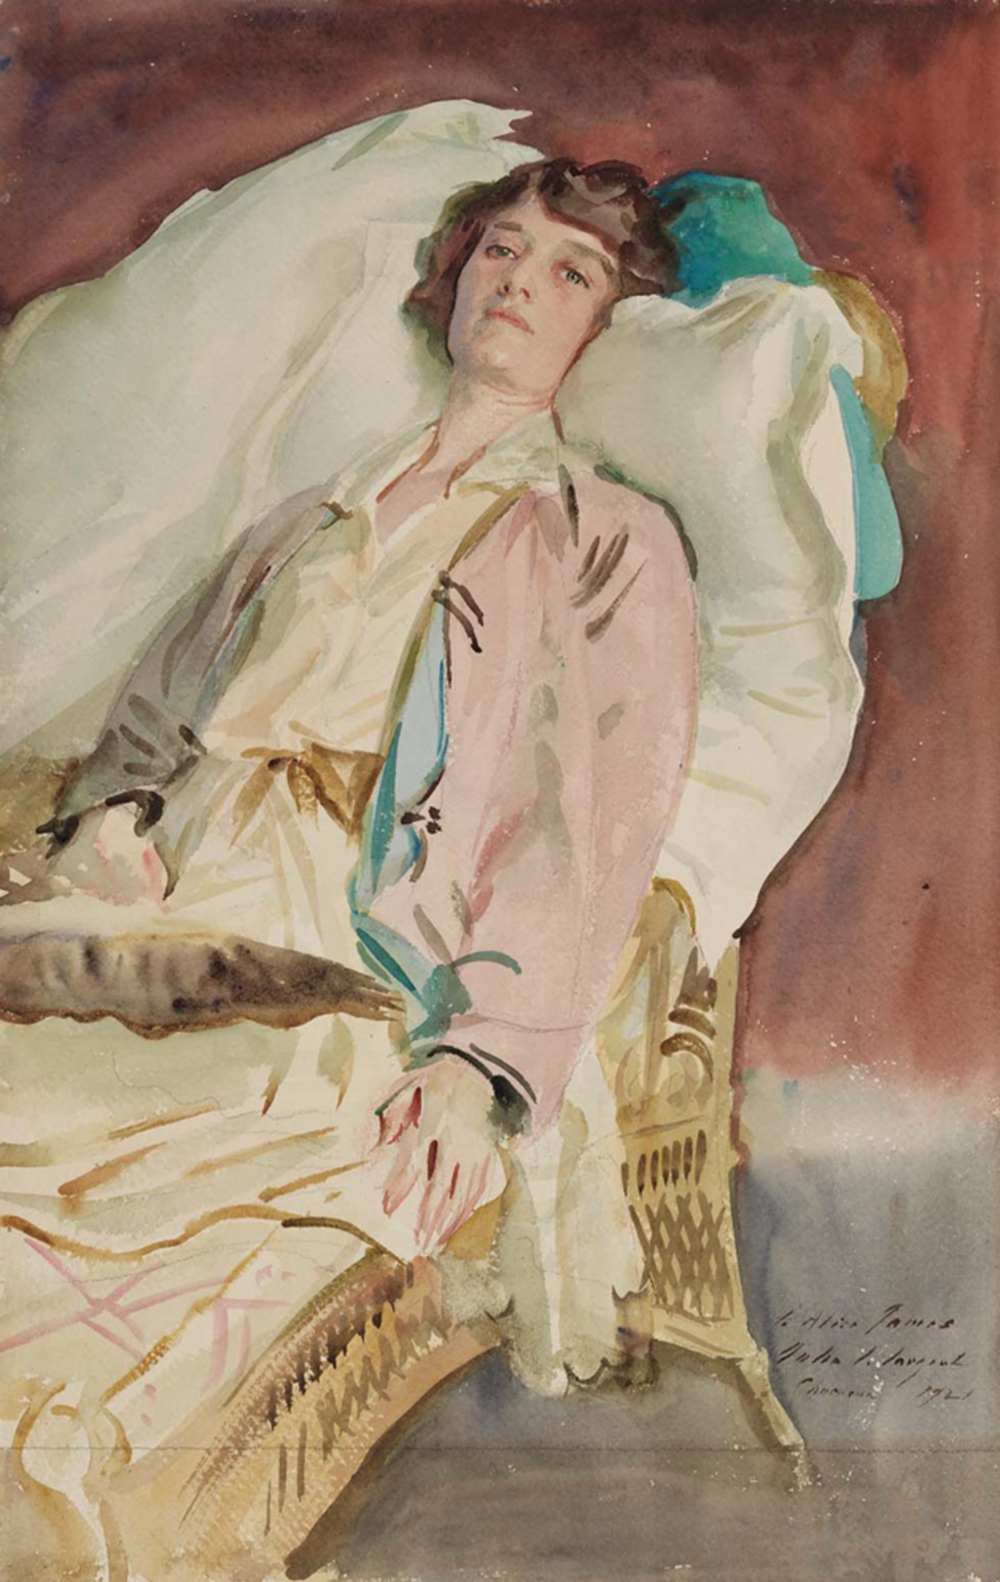 Alice Runnells James, by John Singer Sargent, 1921. Museum of Fine Arts, Boston, Gift of William James. This portrait depicts the wife of William's son Billy.